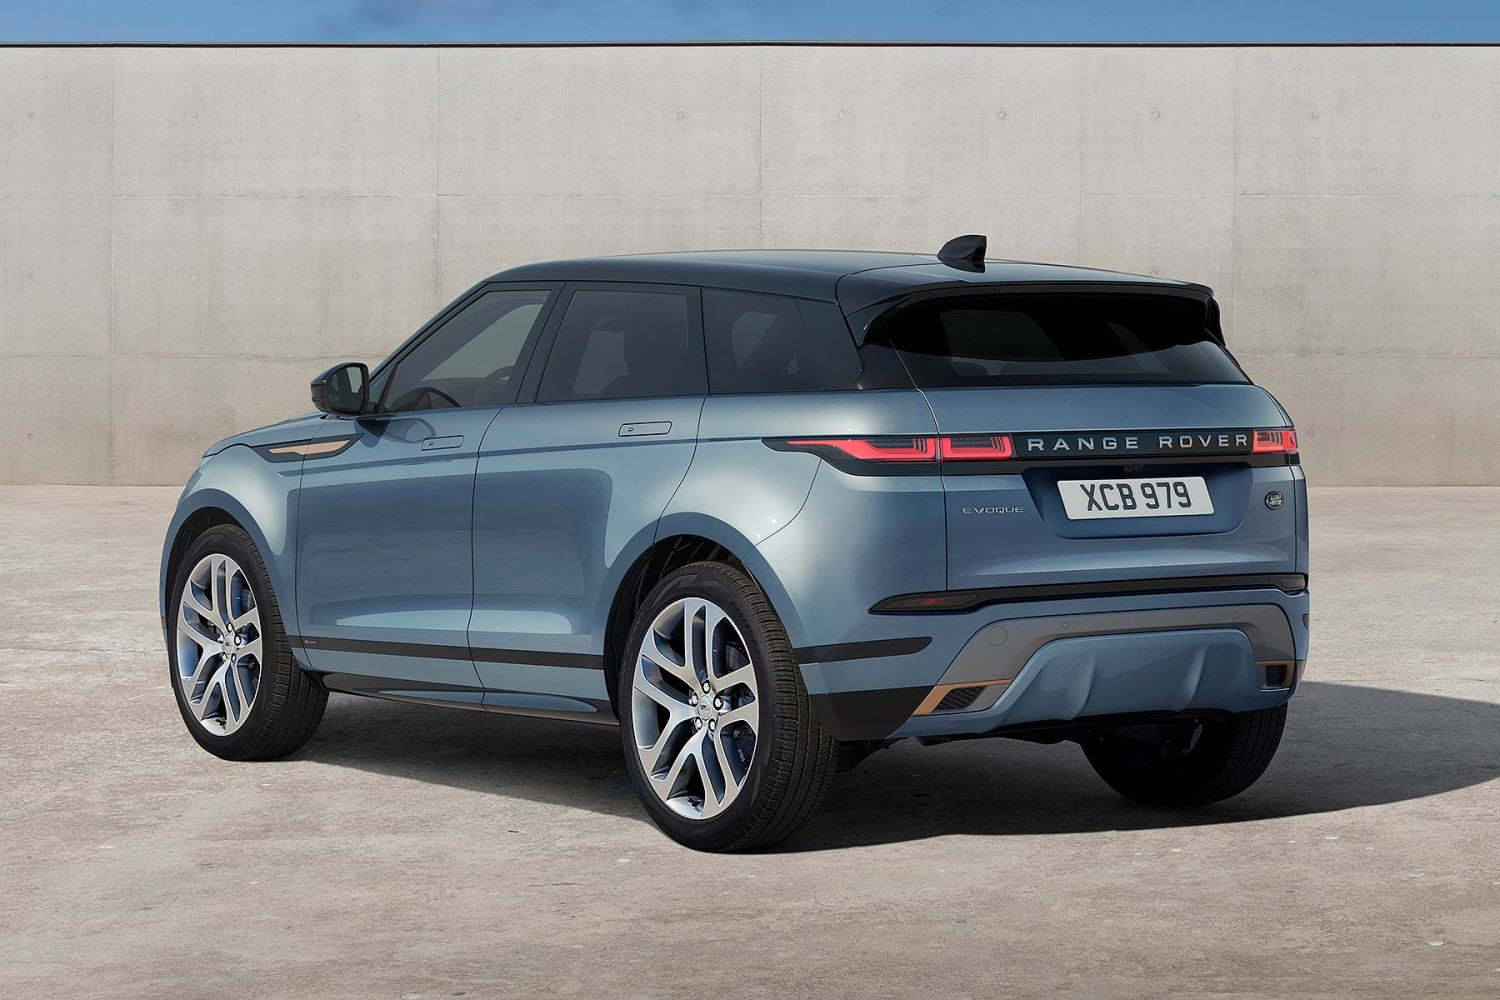 2019 Range Rover Evoque MK2: Redesign, Changes, Price >> New 2019 Range Rover Evoque Revealed And Ordering Is Open